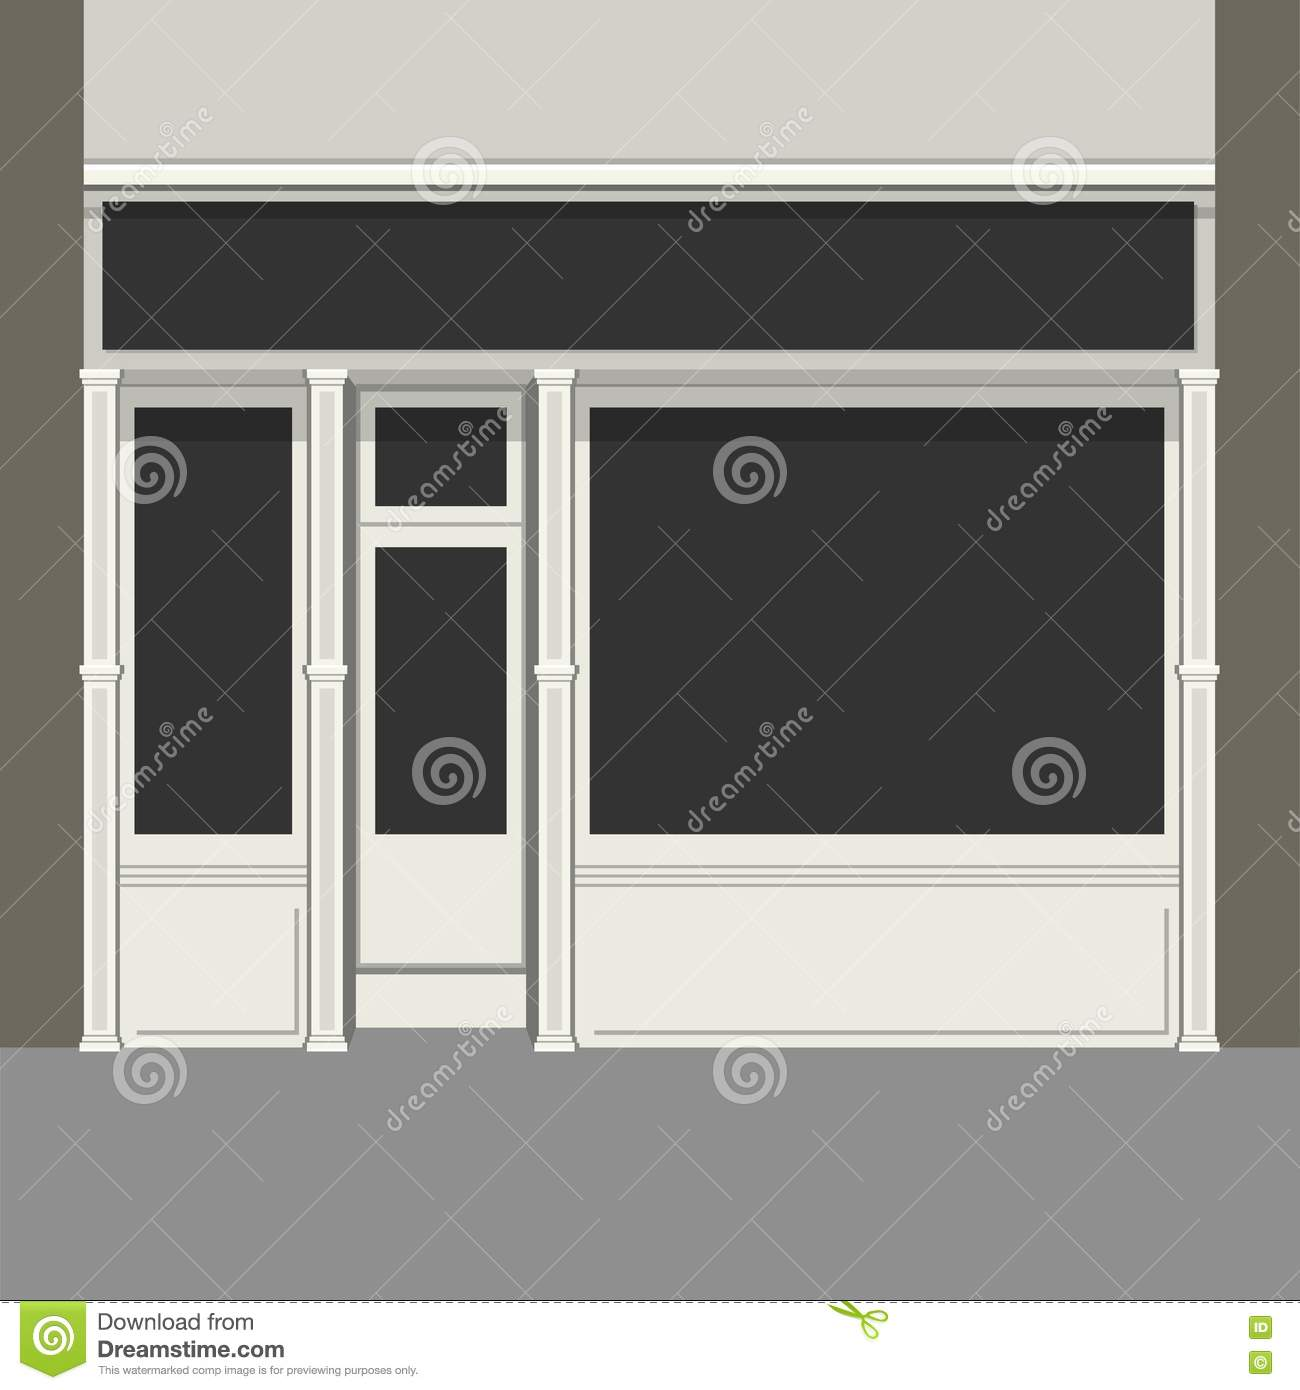 Exhibition Stall Design Vector Free Download : Shopfront with black windows light store facade vector